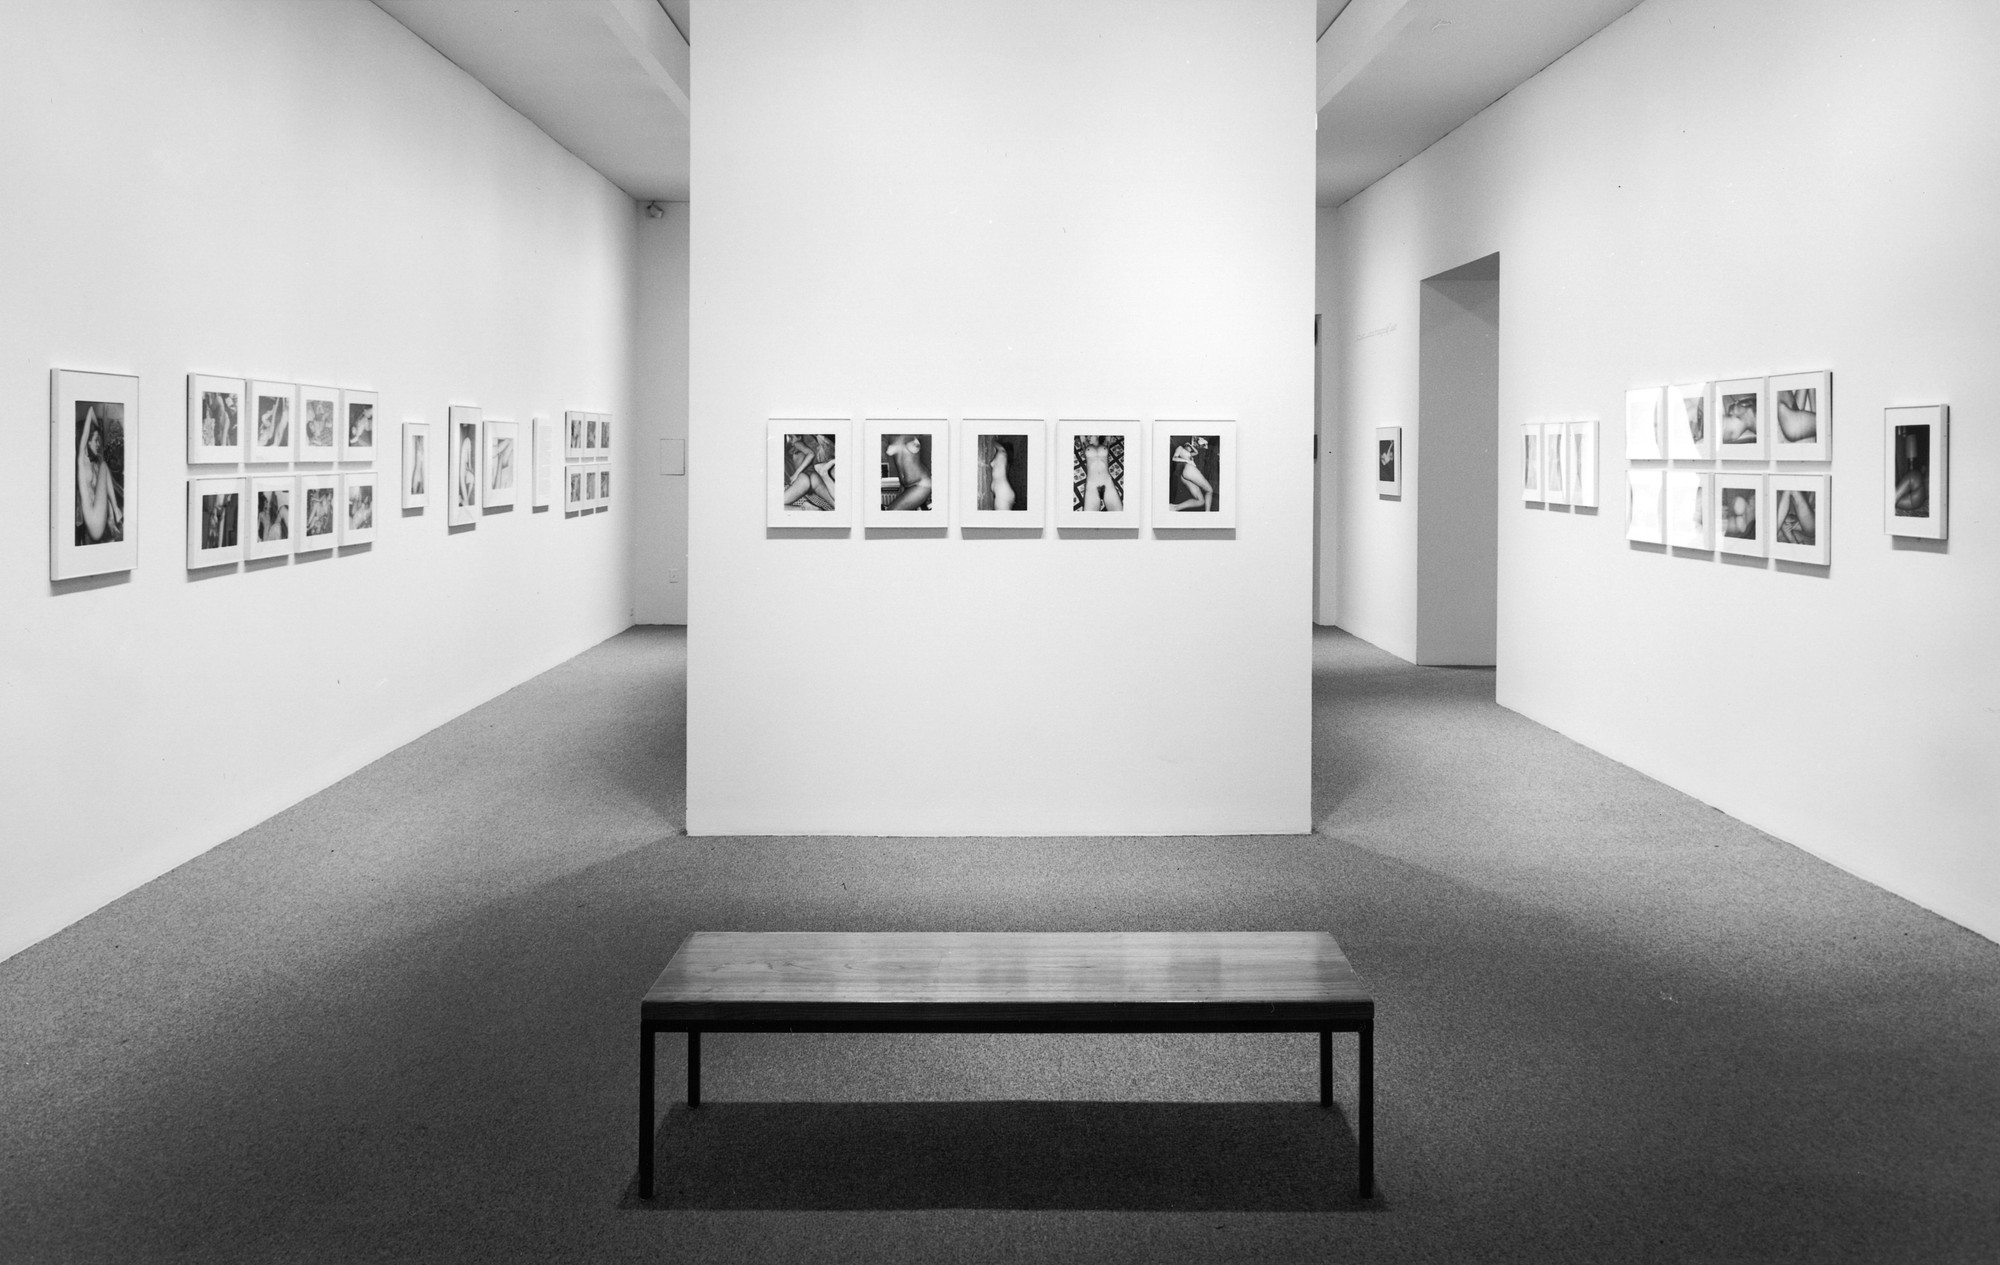 Installation view of Lee Friedlander: Nudes at The Museum of Modern Art, New York. Photo: Mali Olatunji